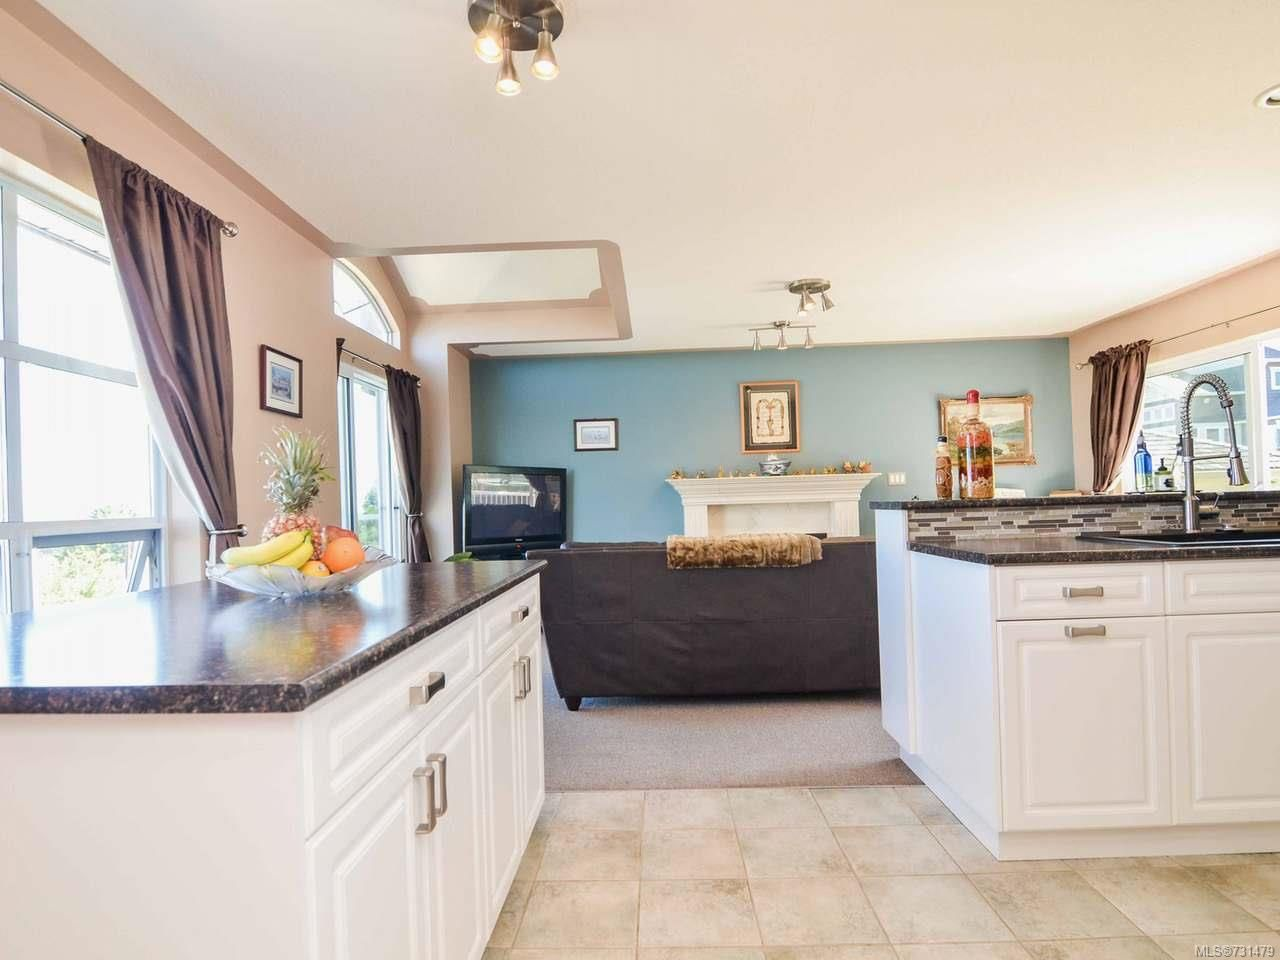 Photo 17: Photos: 753 Bowen Dr in CAMPBELL RIVER: CR Willow Point House for sale (Campbell River)  : MLS®# 731479